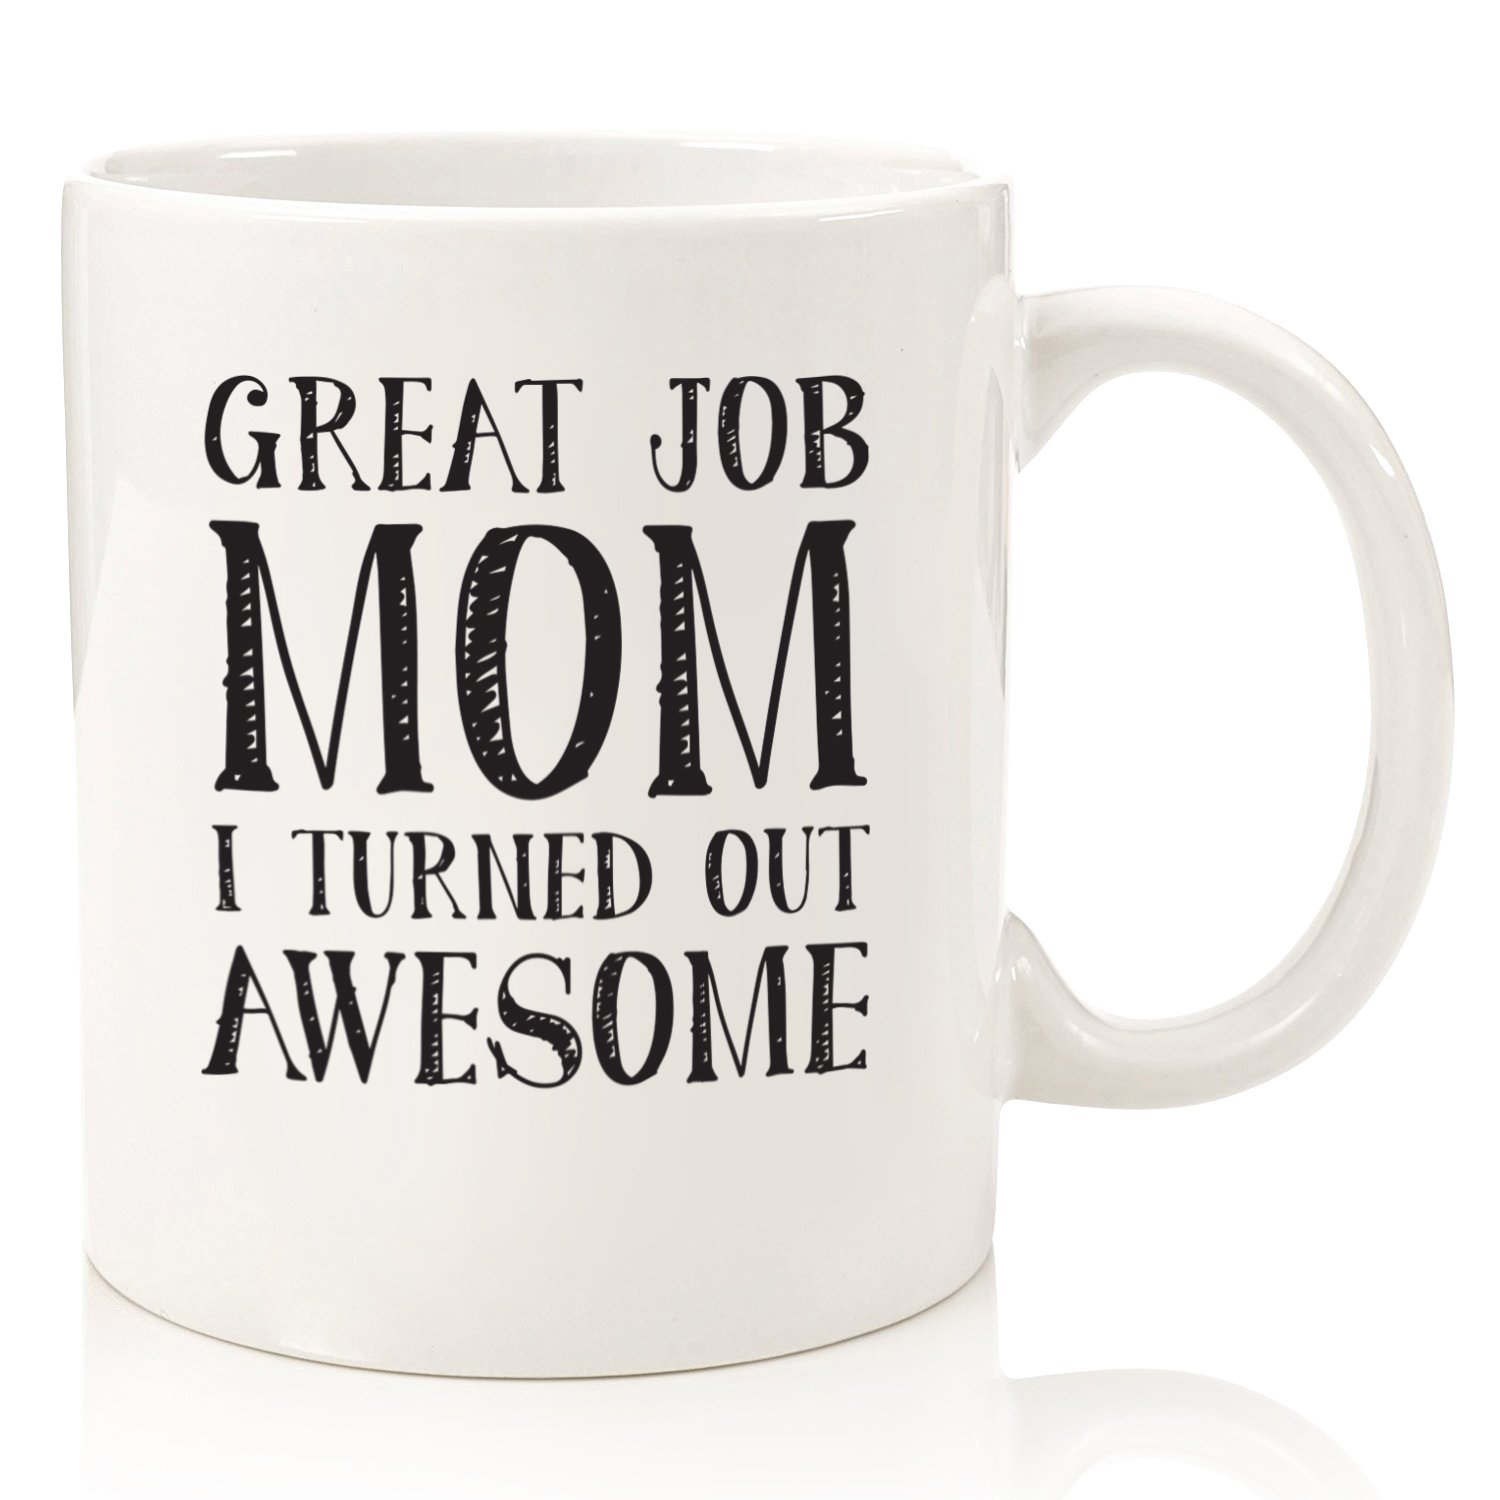 Great Job Mom Funny Coffee Mug - Best Christmas Gifts For Mom, Women ...